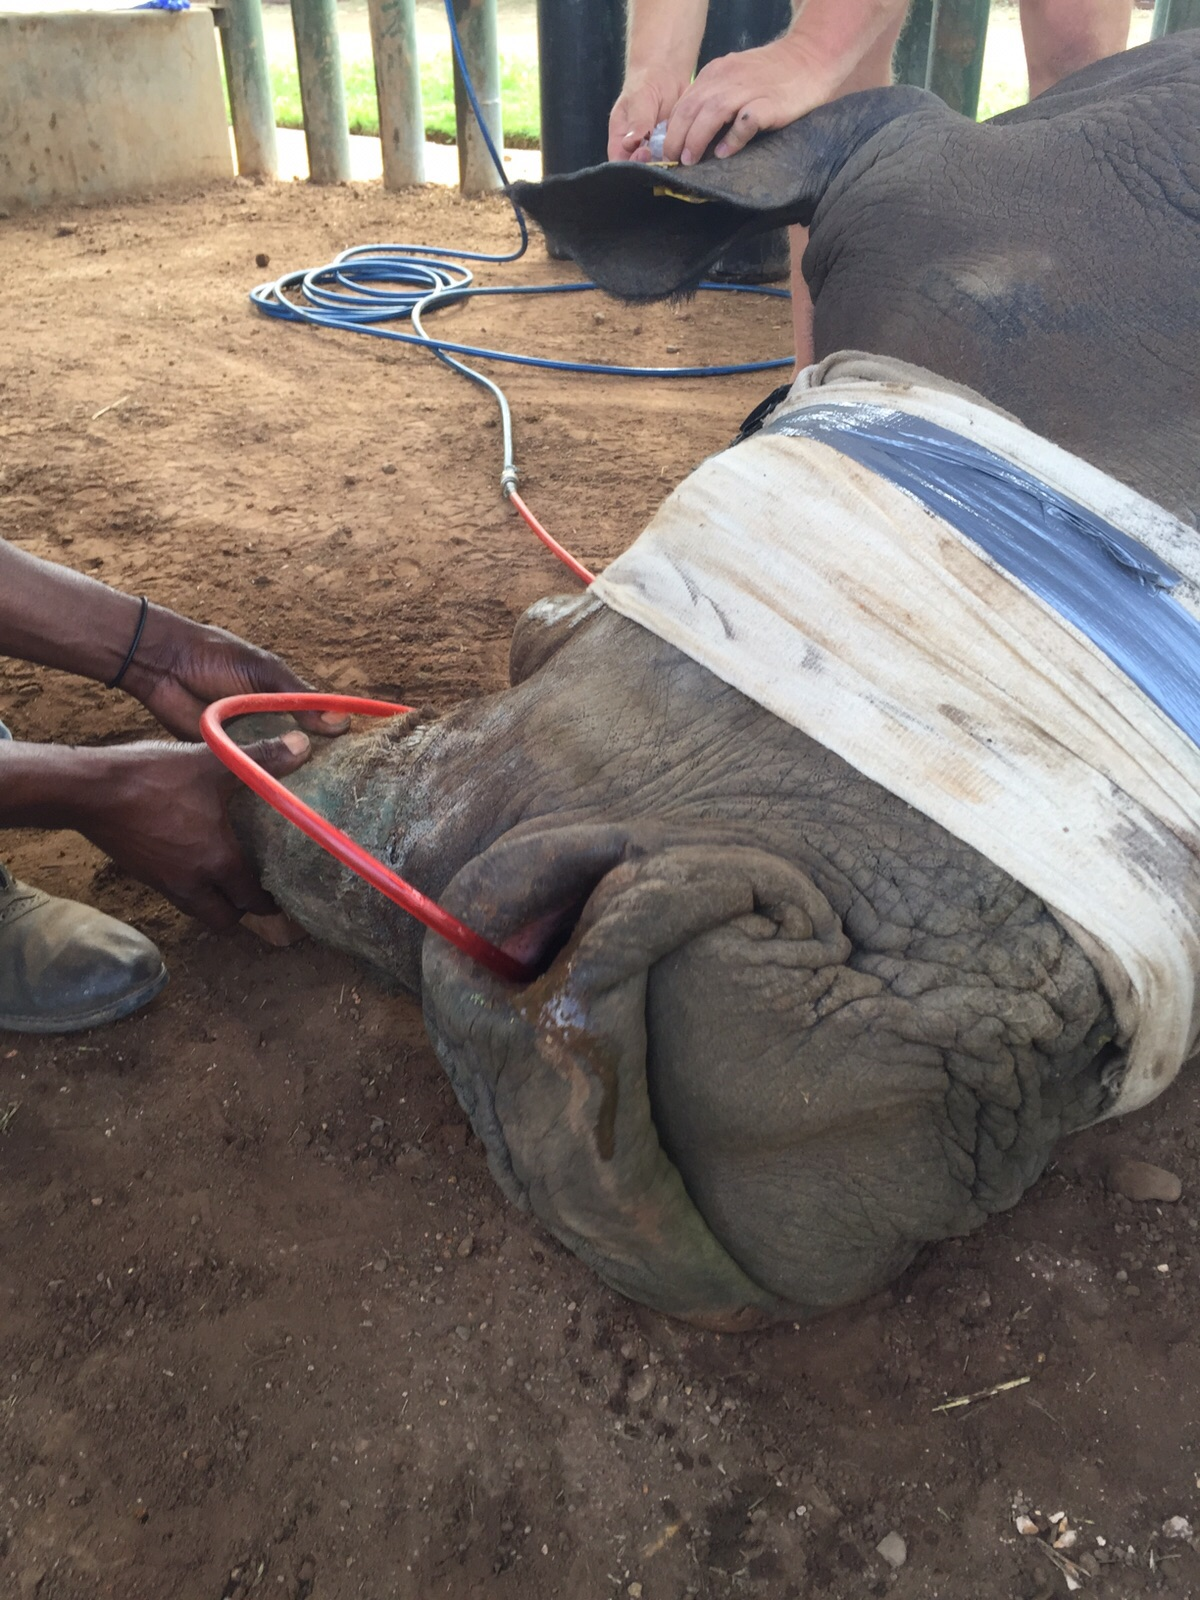 A sedated rhino receiving treatment from vets